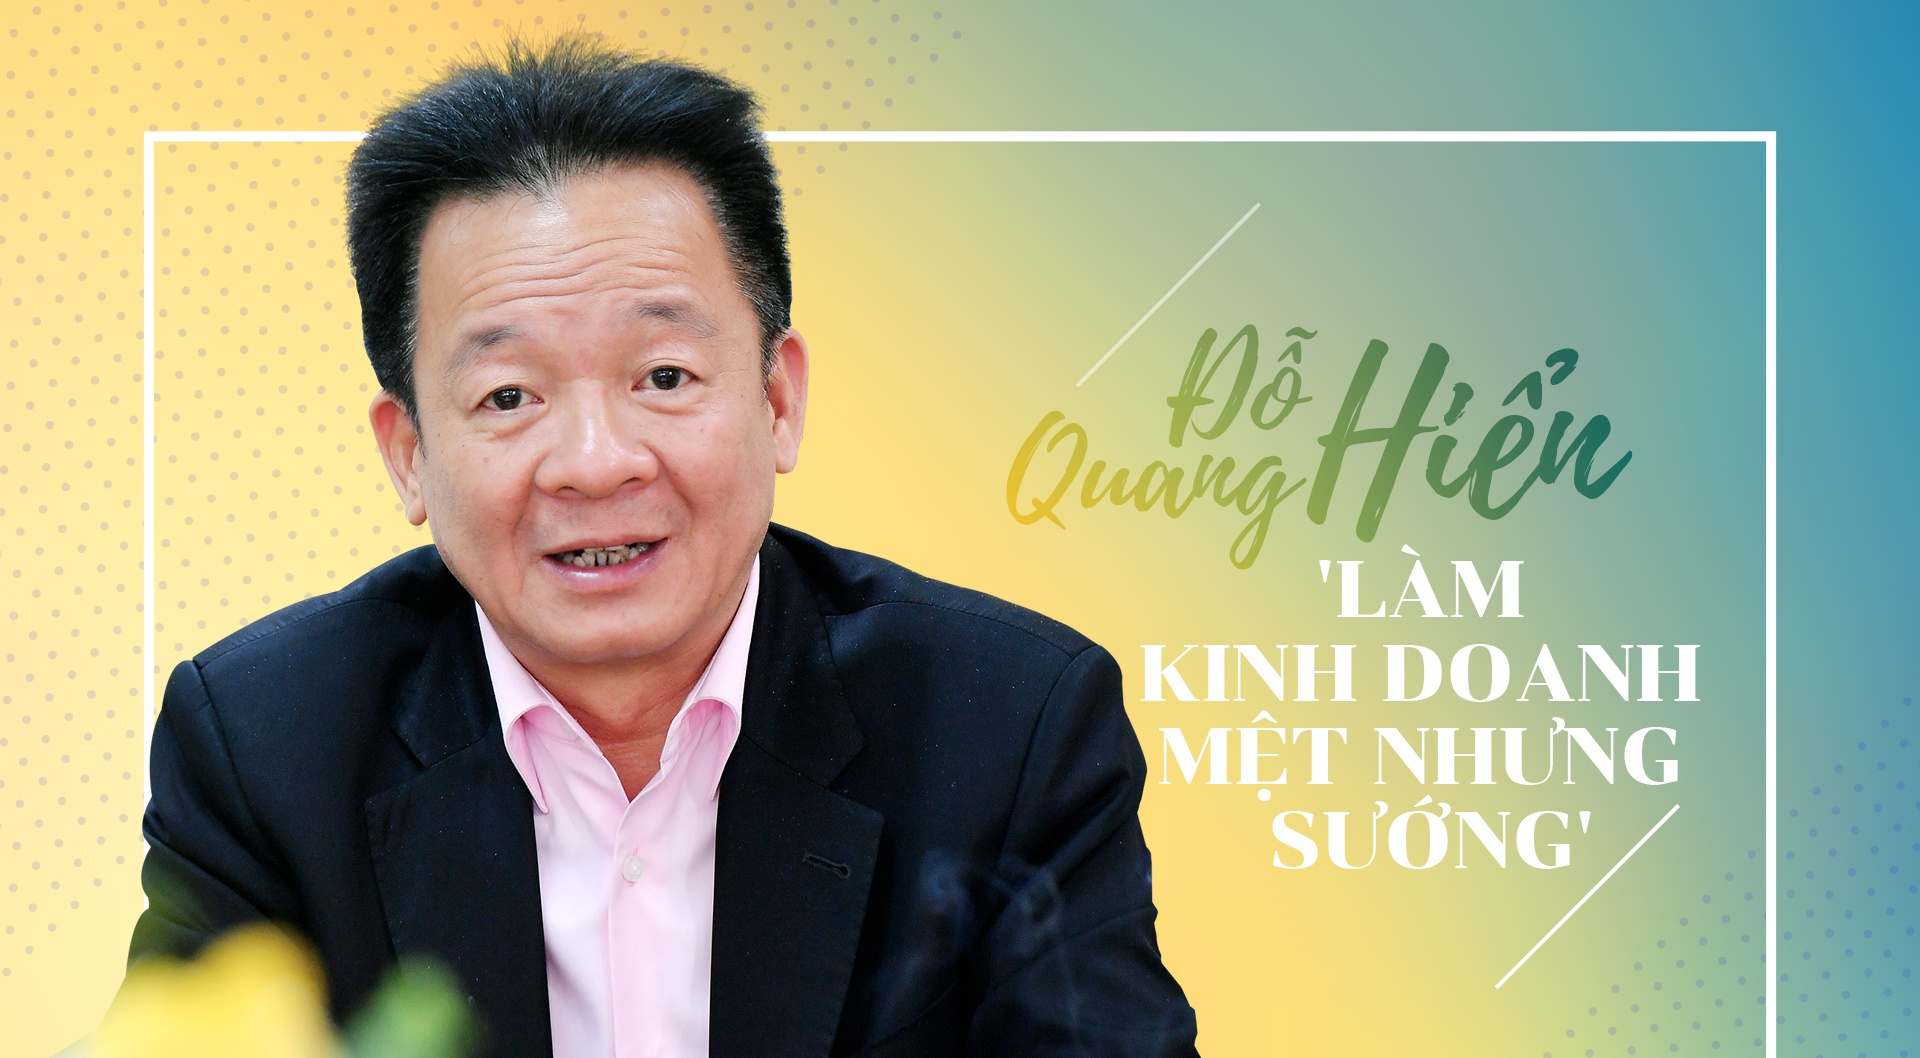 ong bau do quang hien t&t anh 2